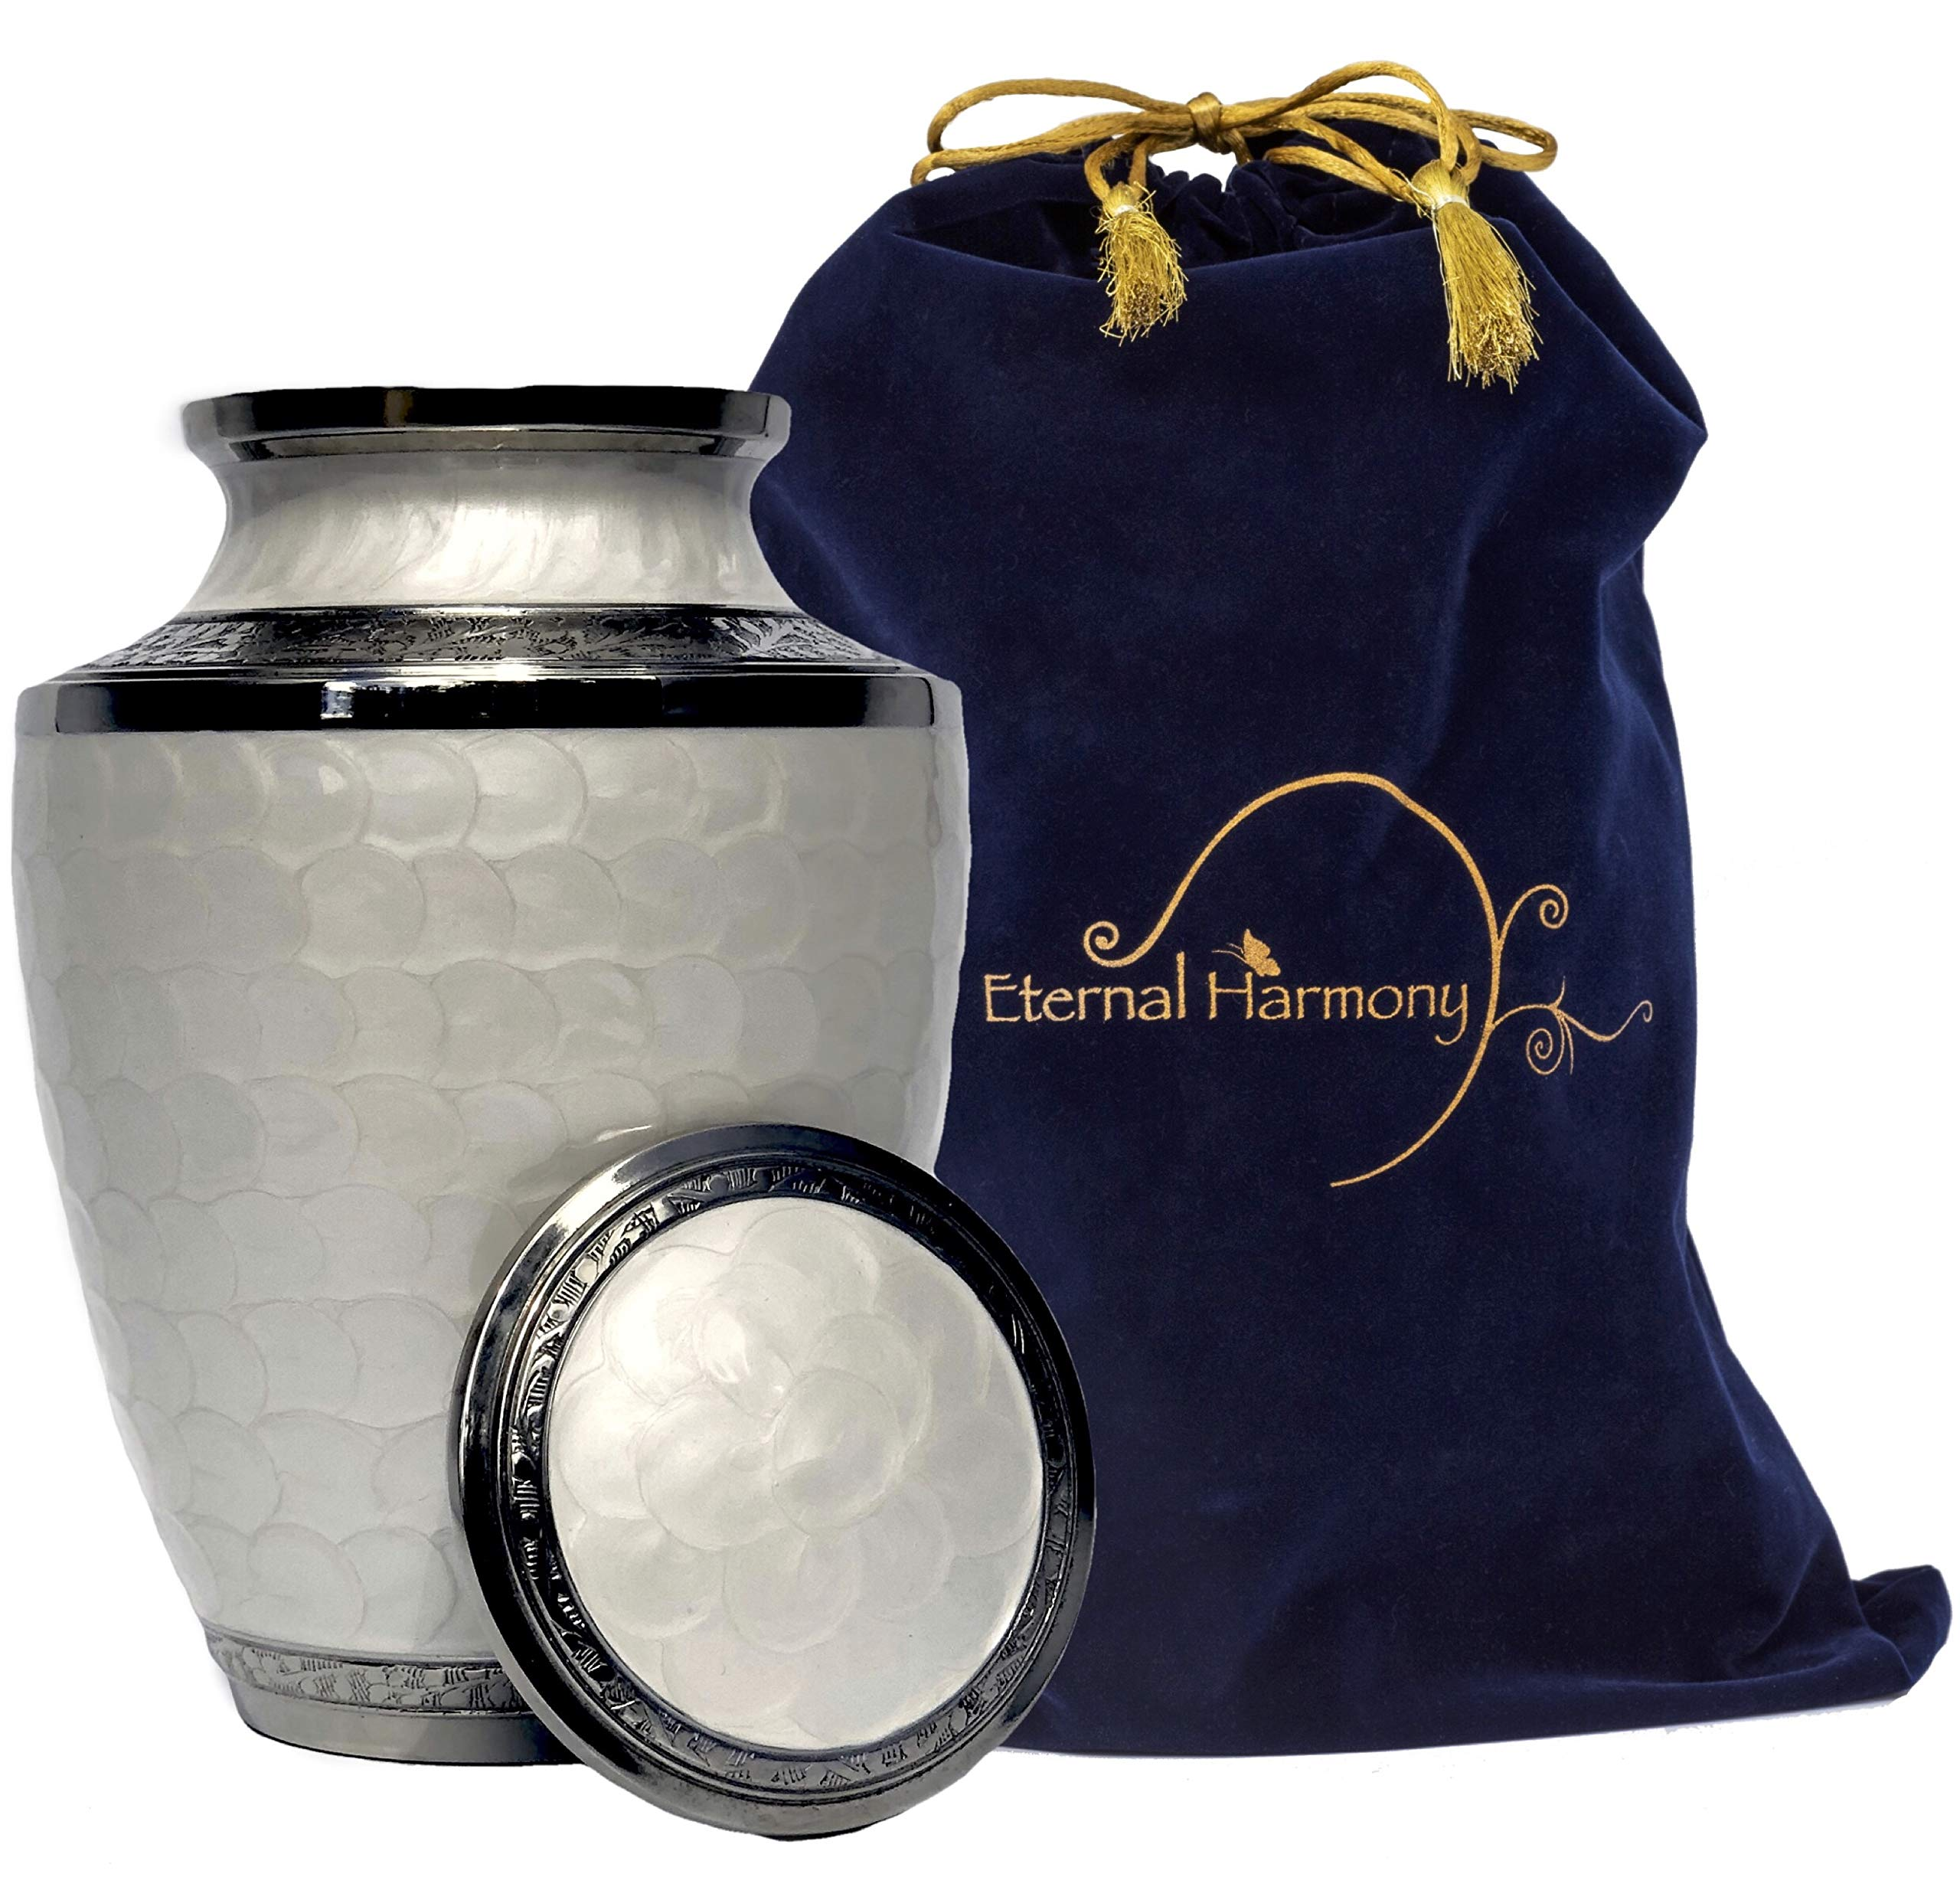 Eternal Harmony Cremation Urn for Human Ashes | Funeral Urn Carefully Handcrafted with Elegant Finishes to Honor and Remember Your Loved One | Adult Urn Large Size with Beautiful Velvet Bag by Eternal Harmony (Image #3)